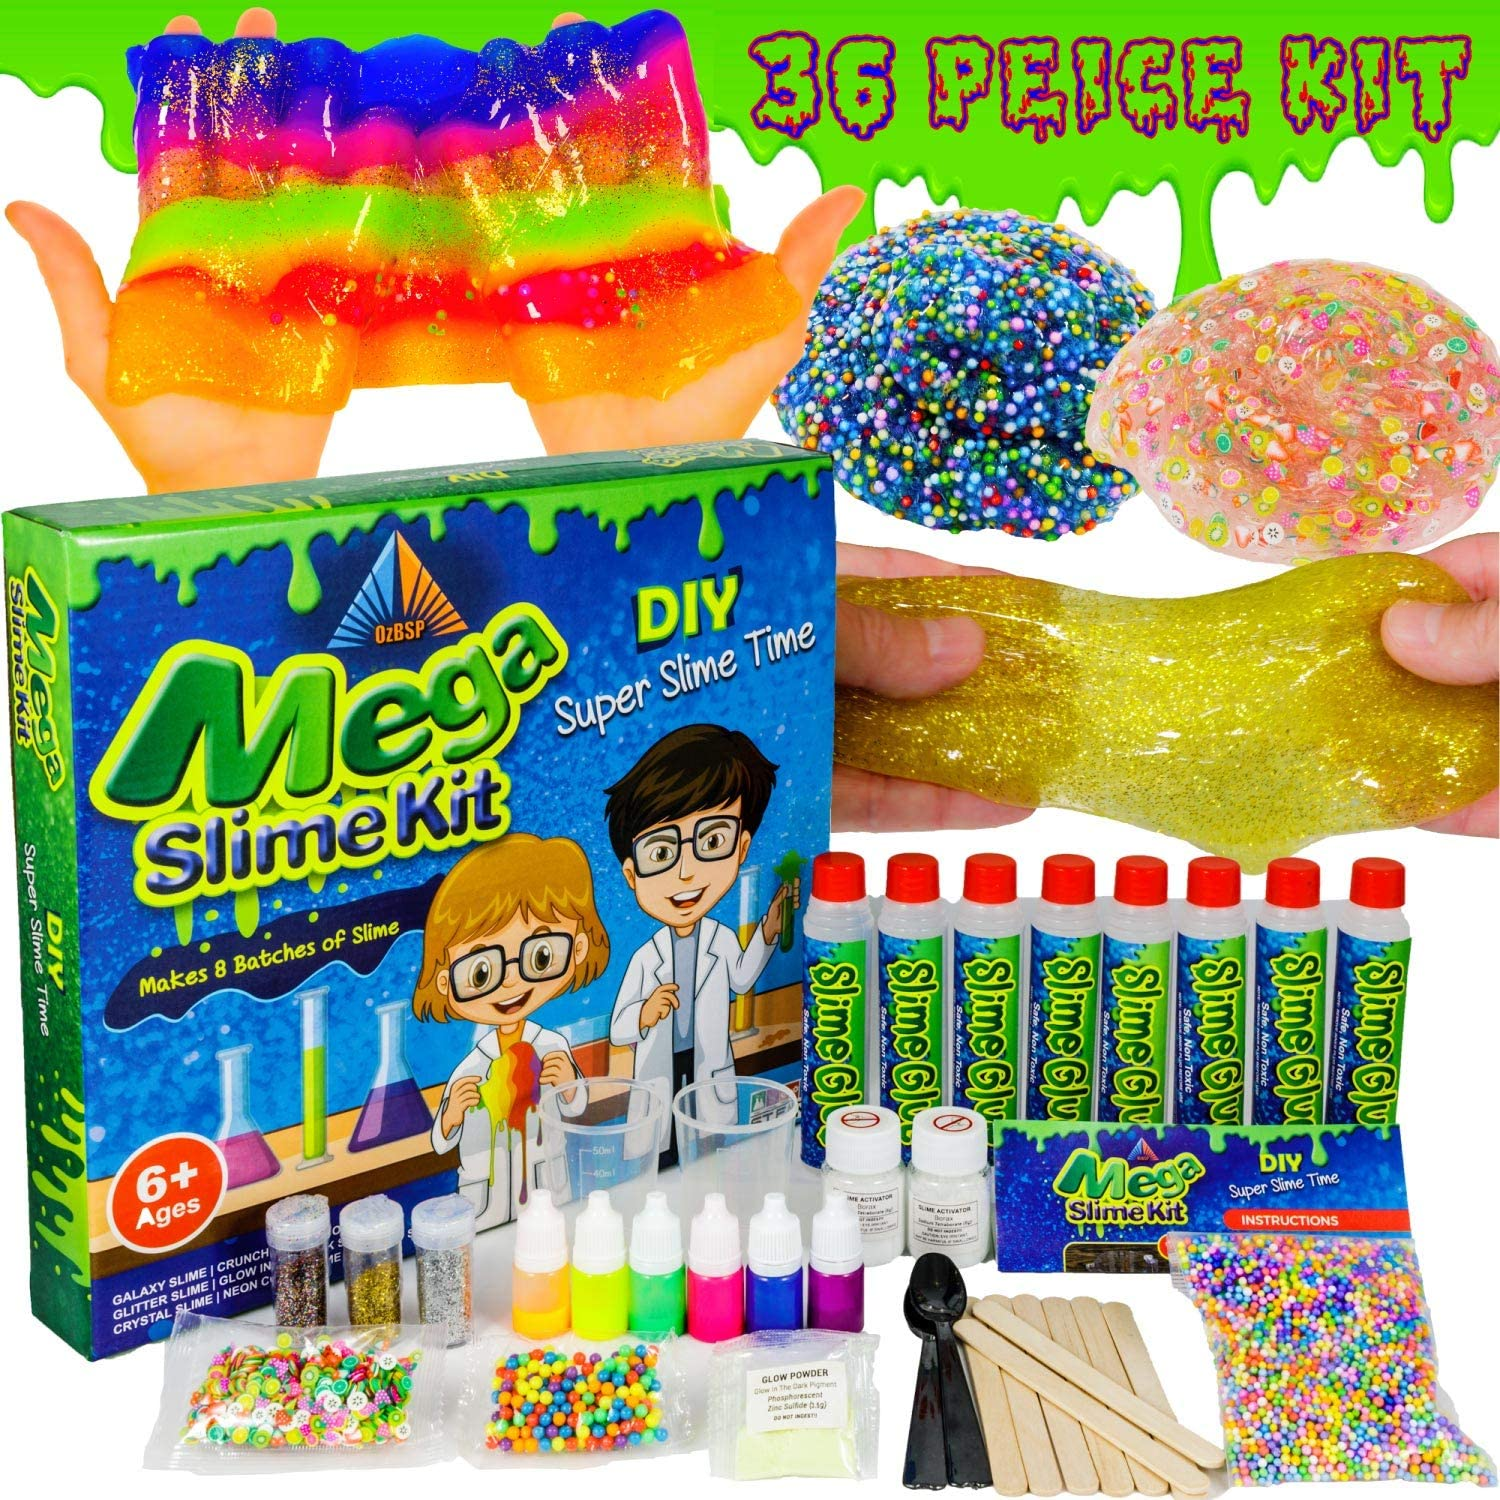 OzBSP Mega Slime Kit. Slime Making Kit for Boys Girls Kids. DIY Slime Kit with Everything to Make 8 Batches of Slime. Clear Glue Glitter Foam Beads Charms Activator Neon Colors. Slime Supplies Kits